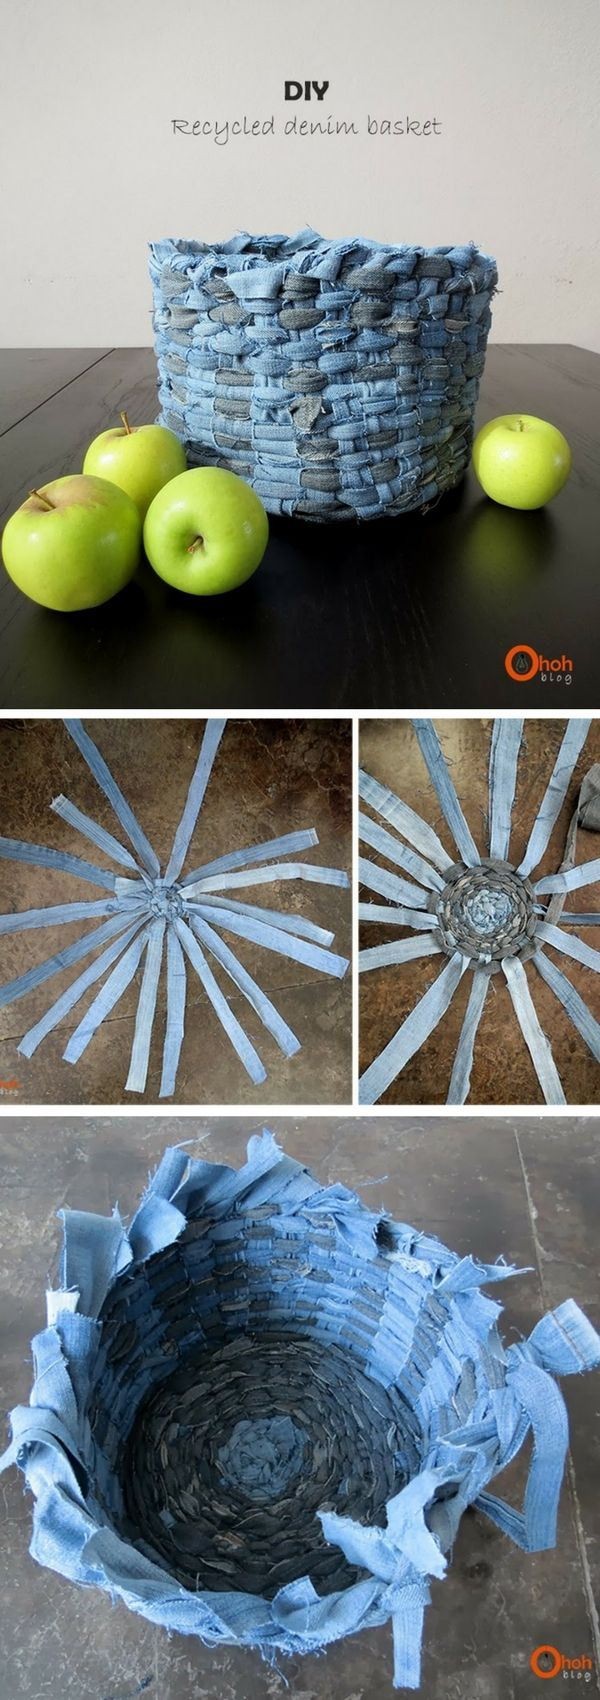 Check out how to make a DIY decorative basket from old jeans @istandarddesign